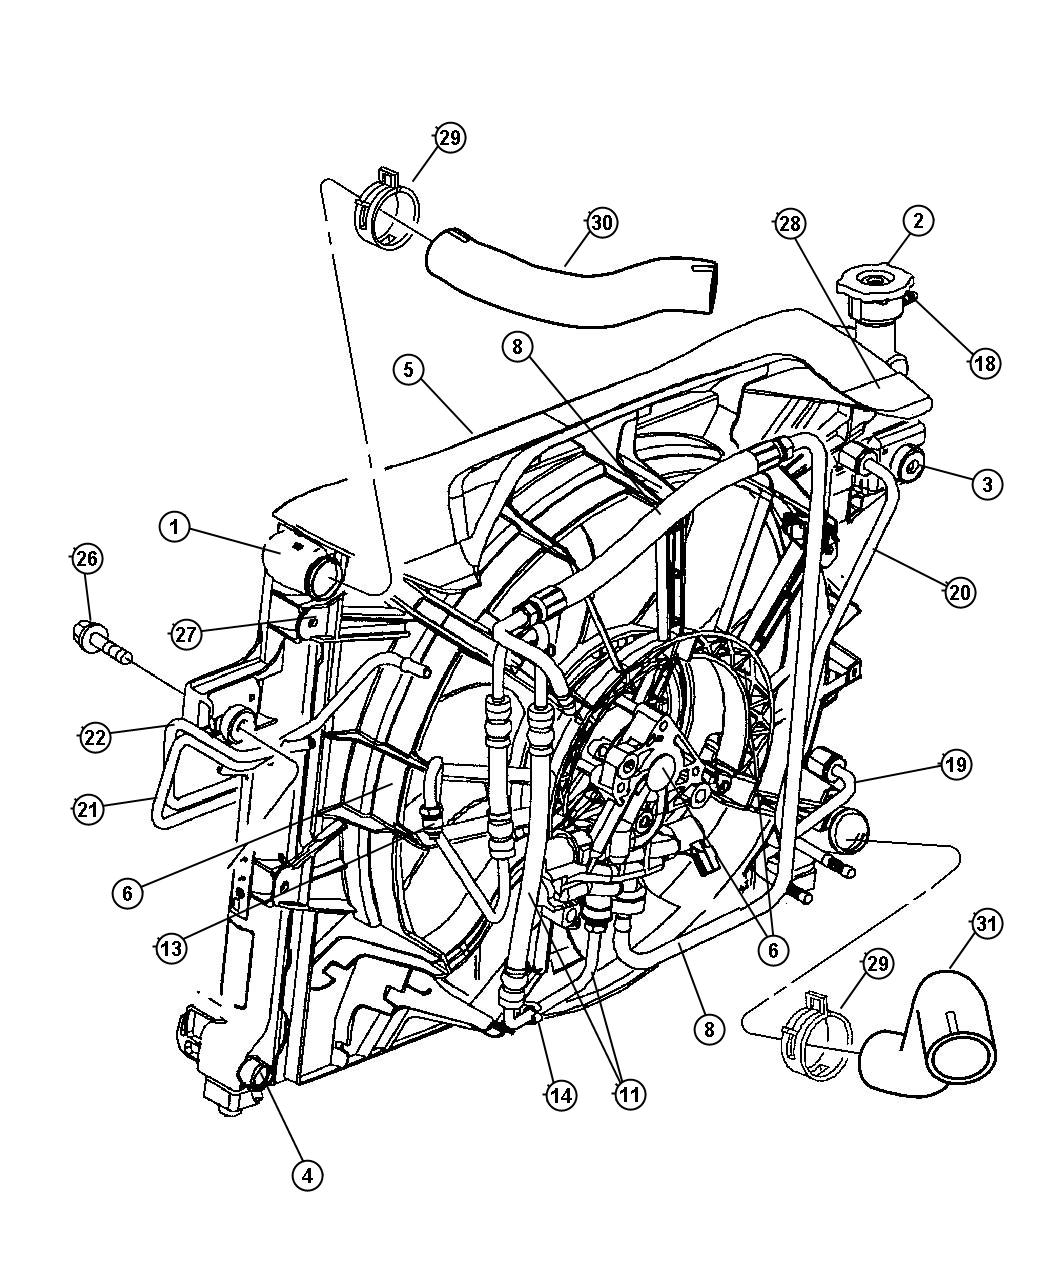 Radiator And Related Parts 4 7l Engine